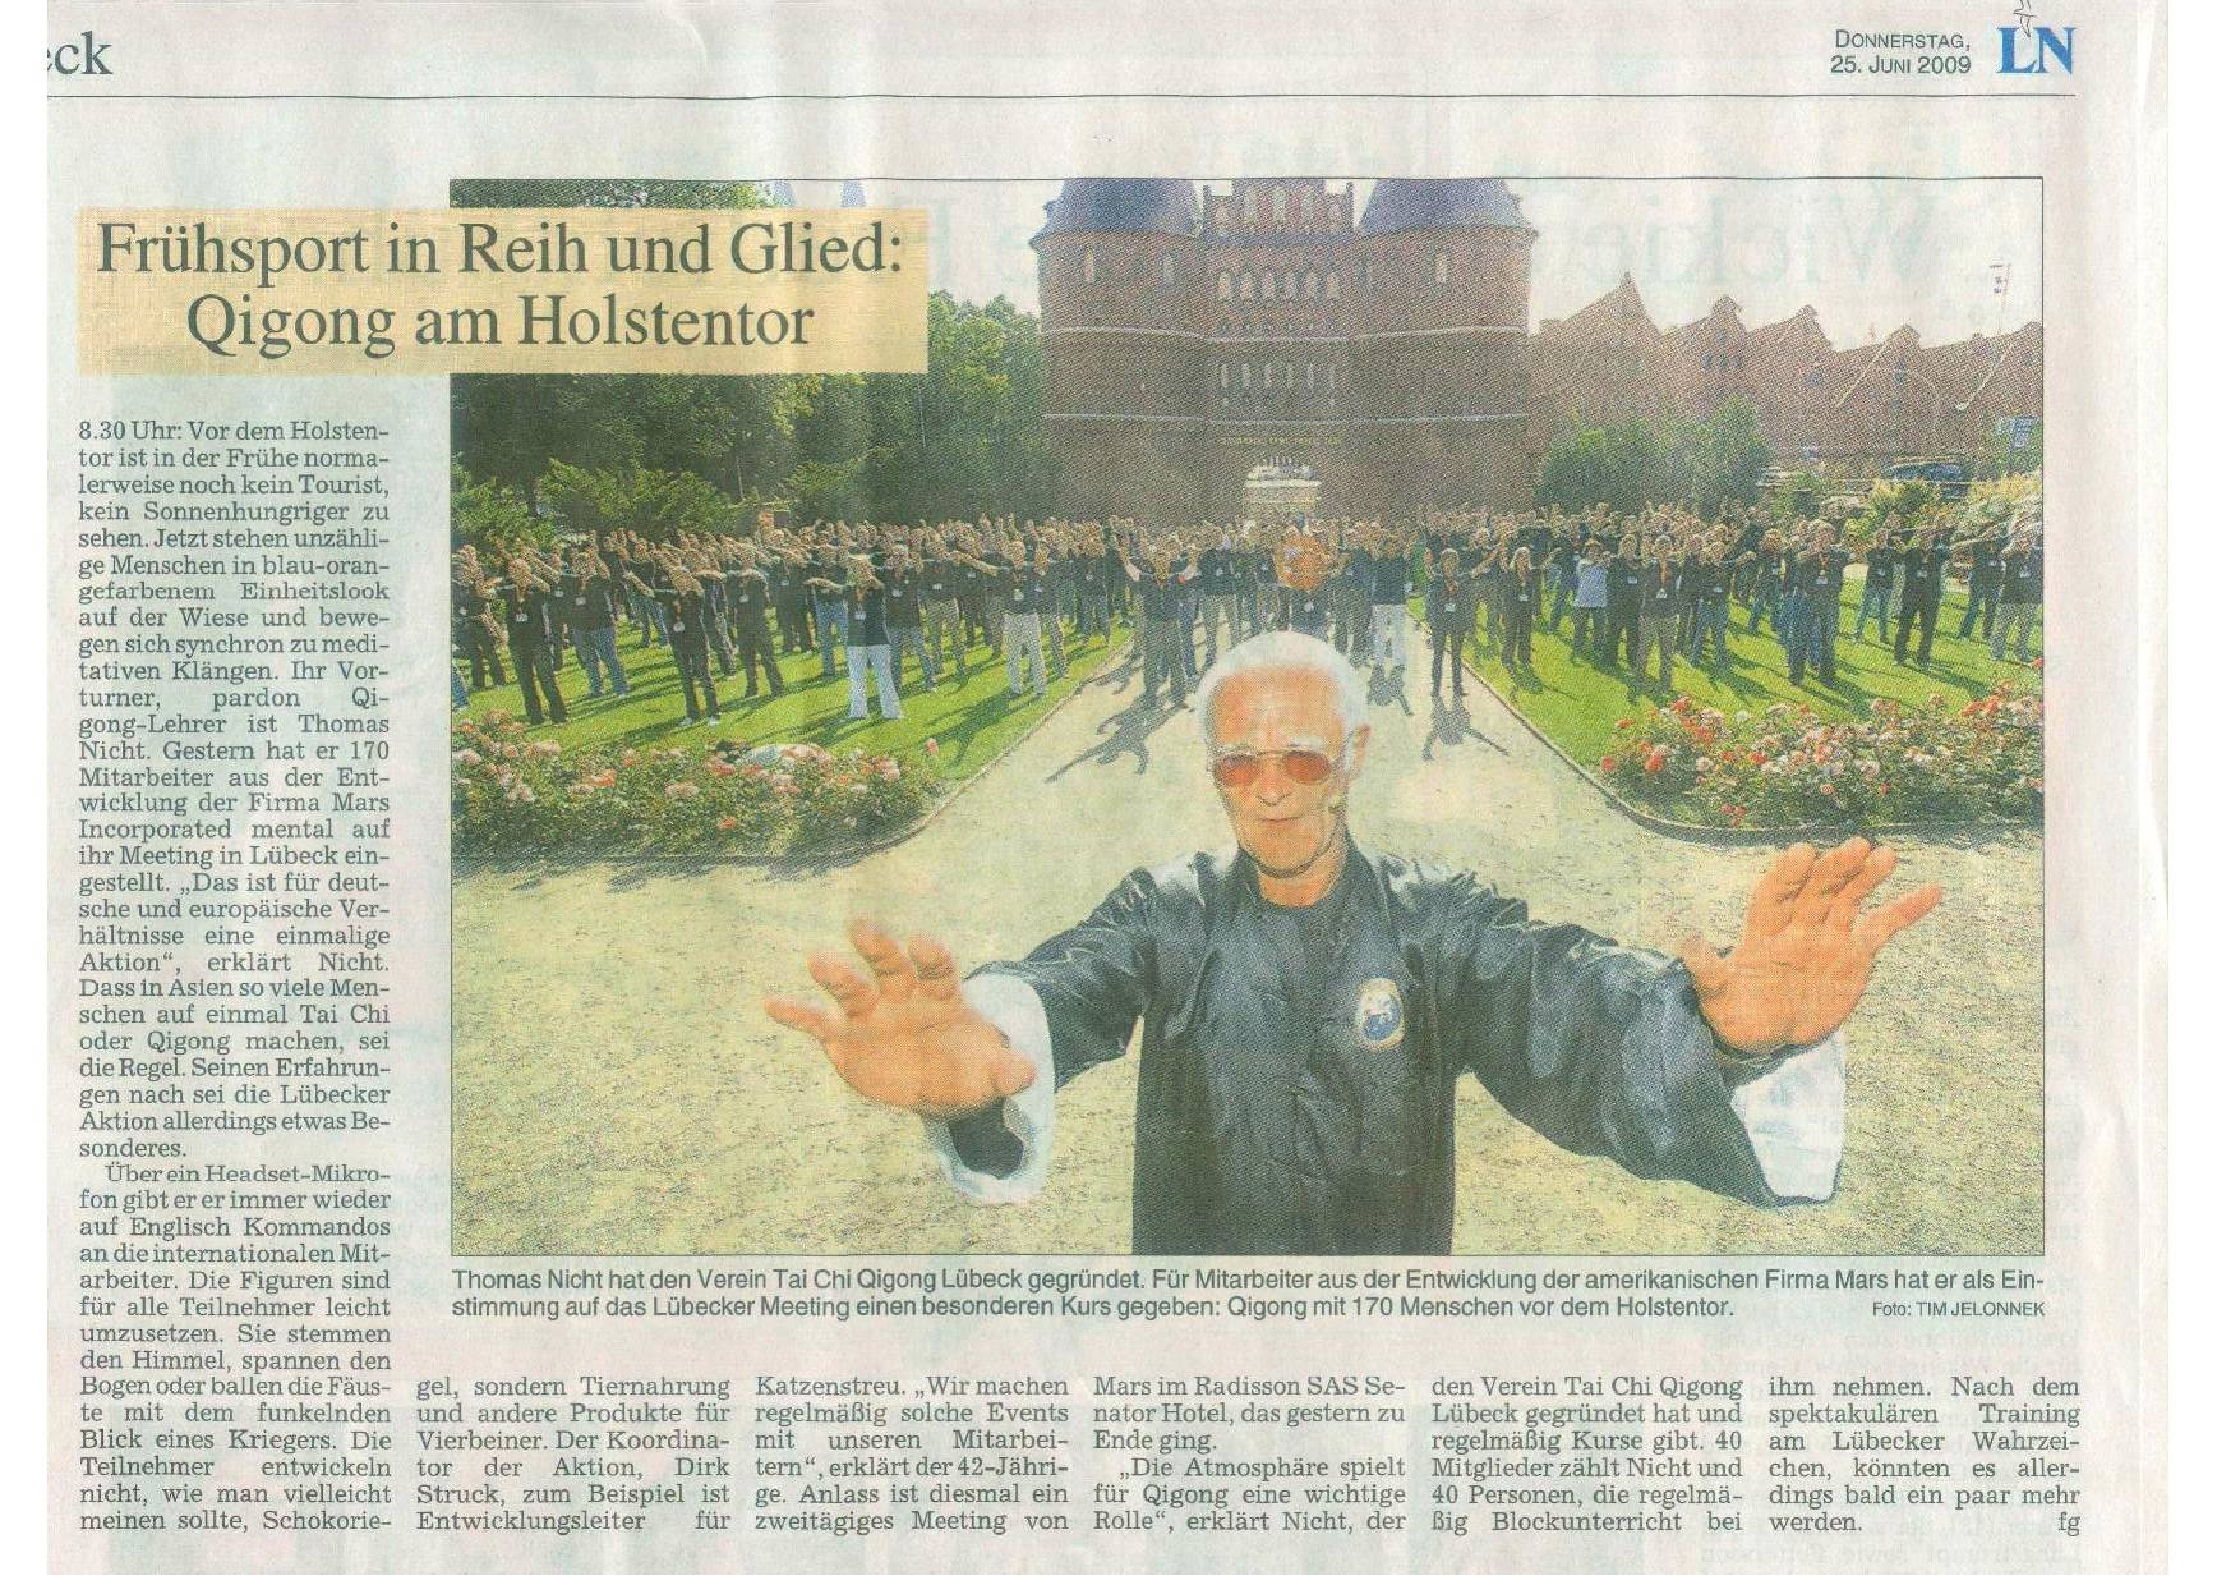 Holstentor Qigong